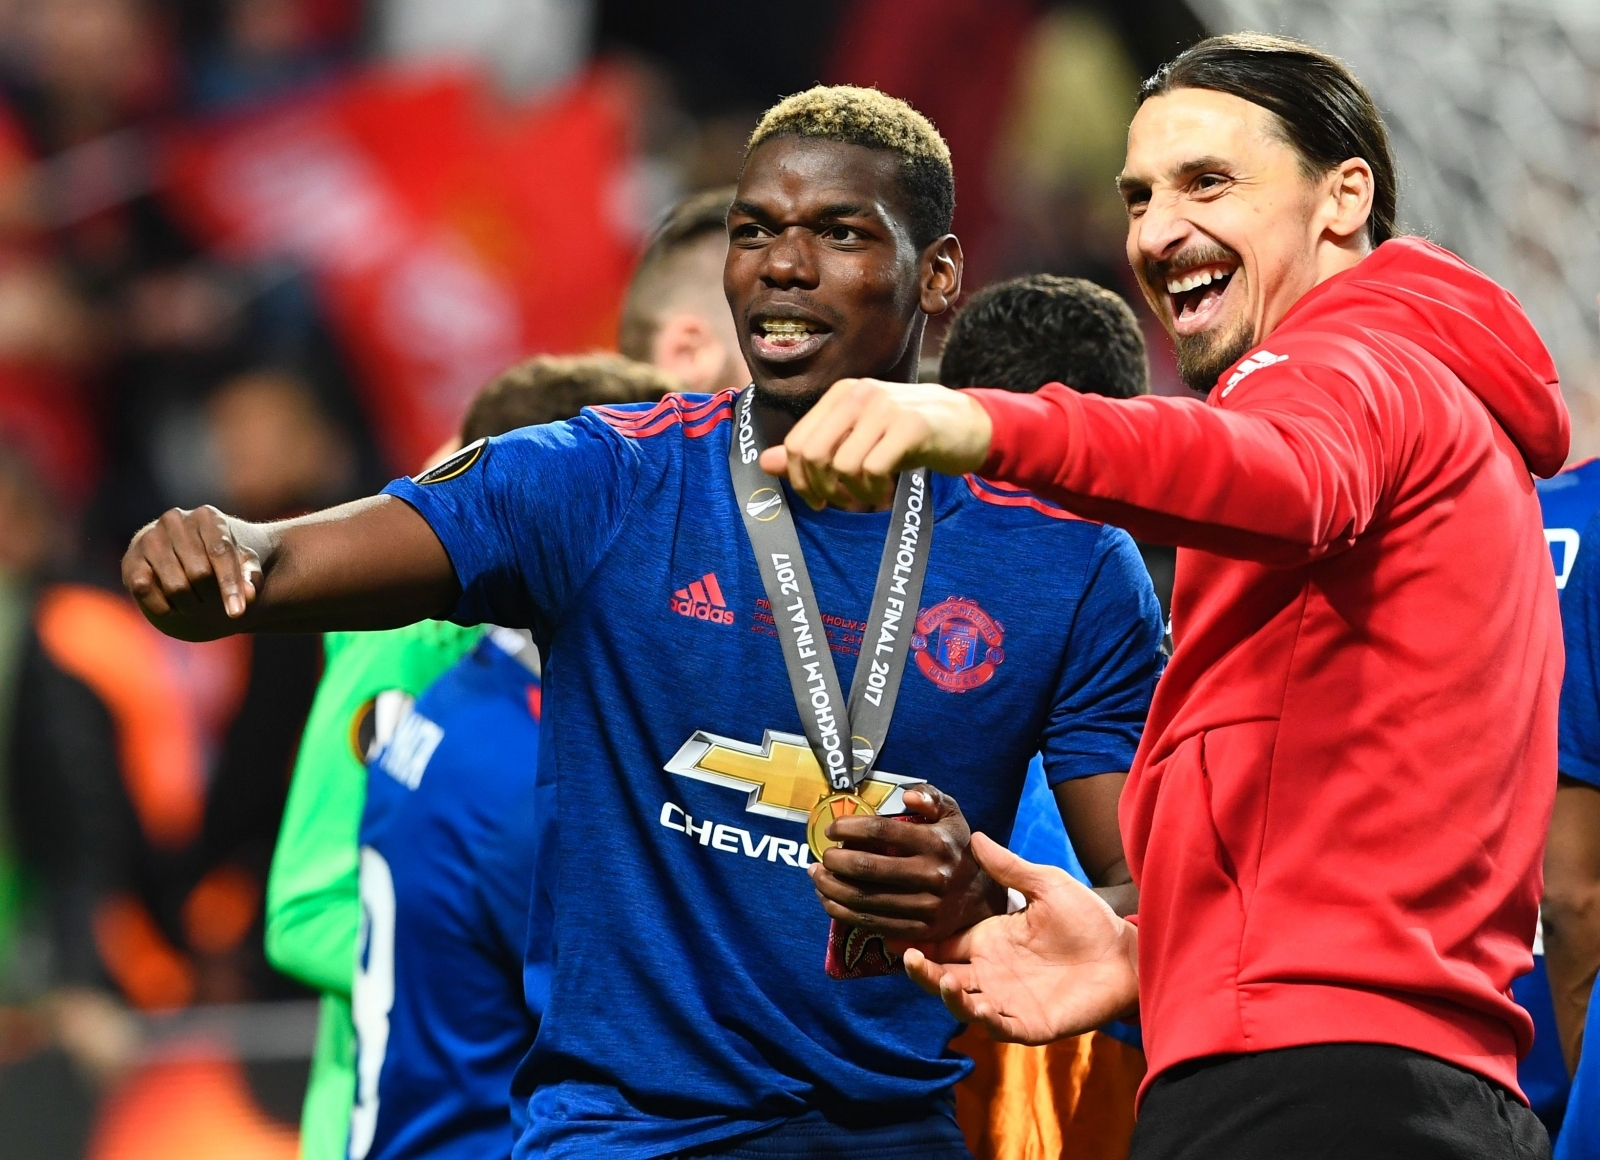 Paul Pogba and Zlatan Ibrahimovic